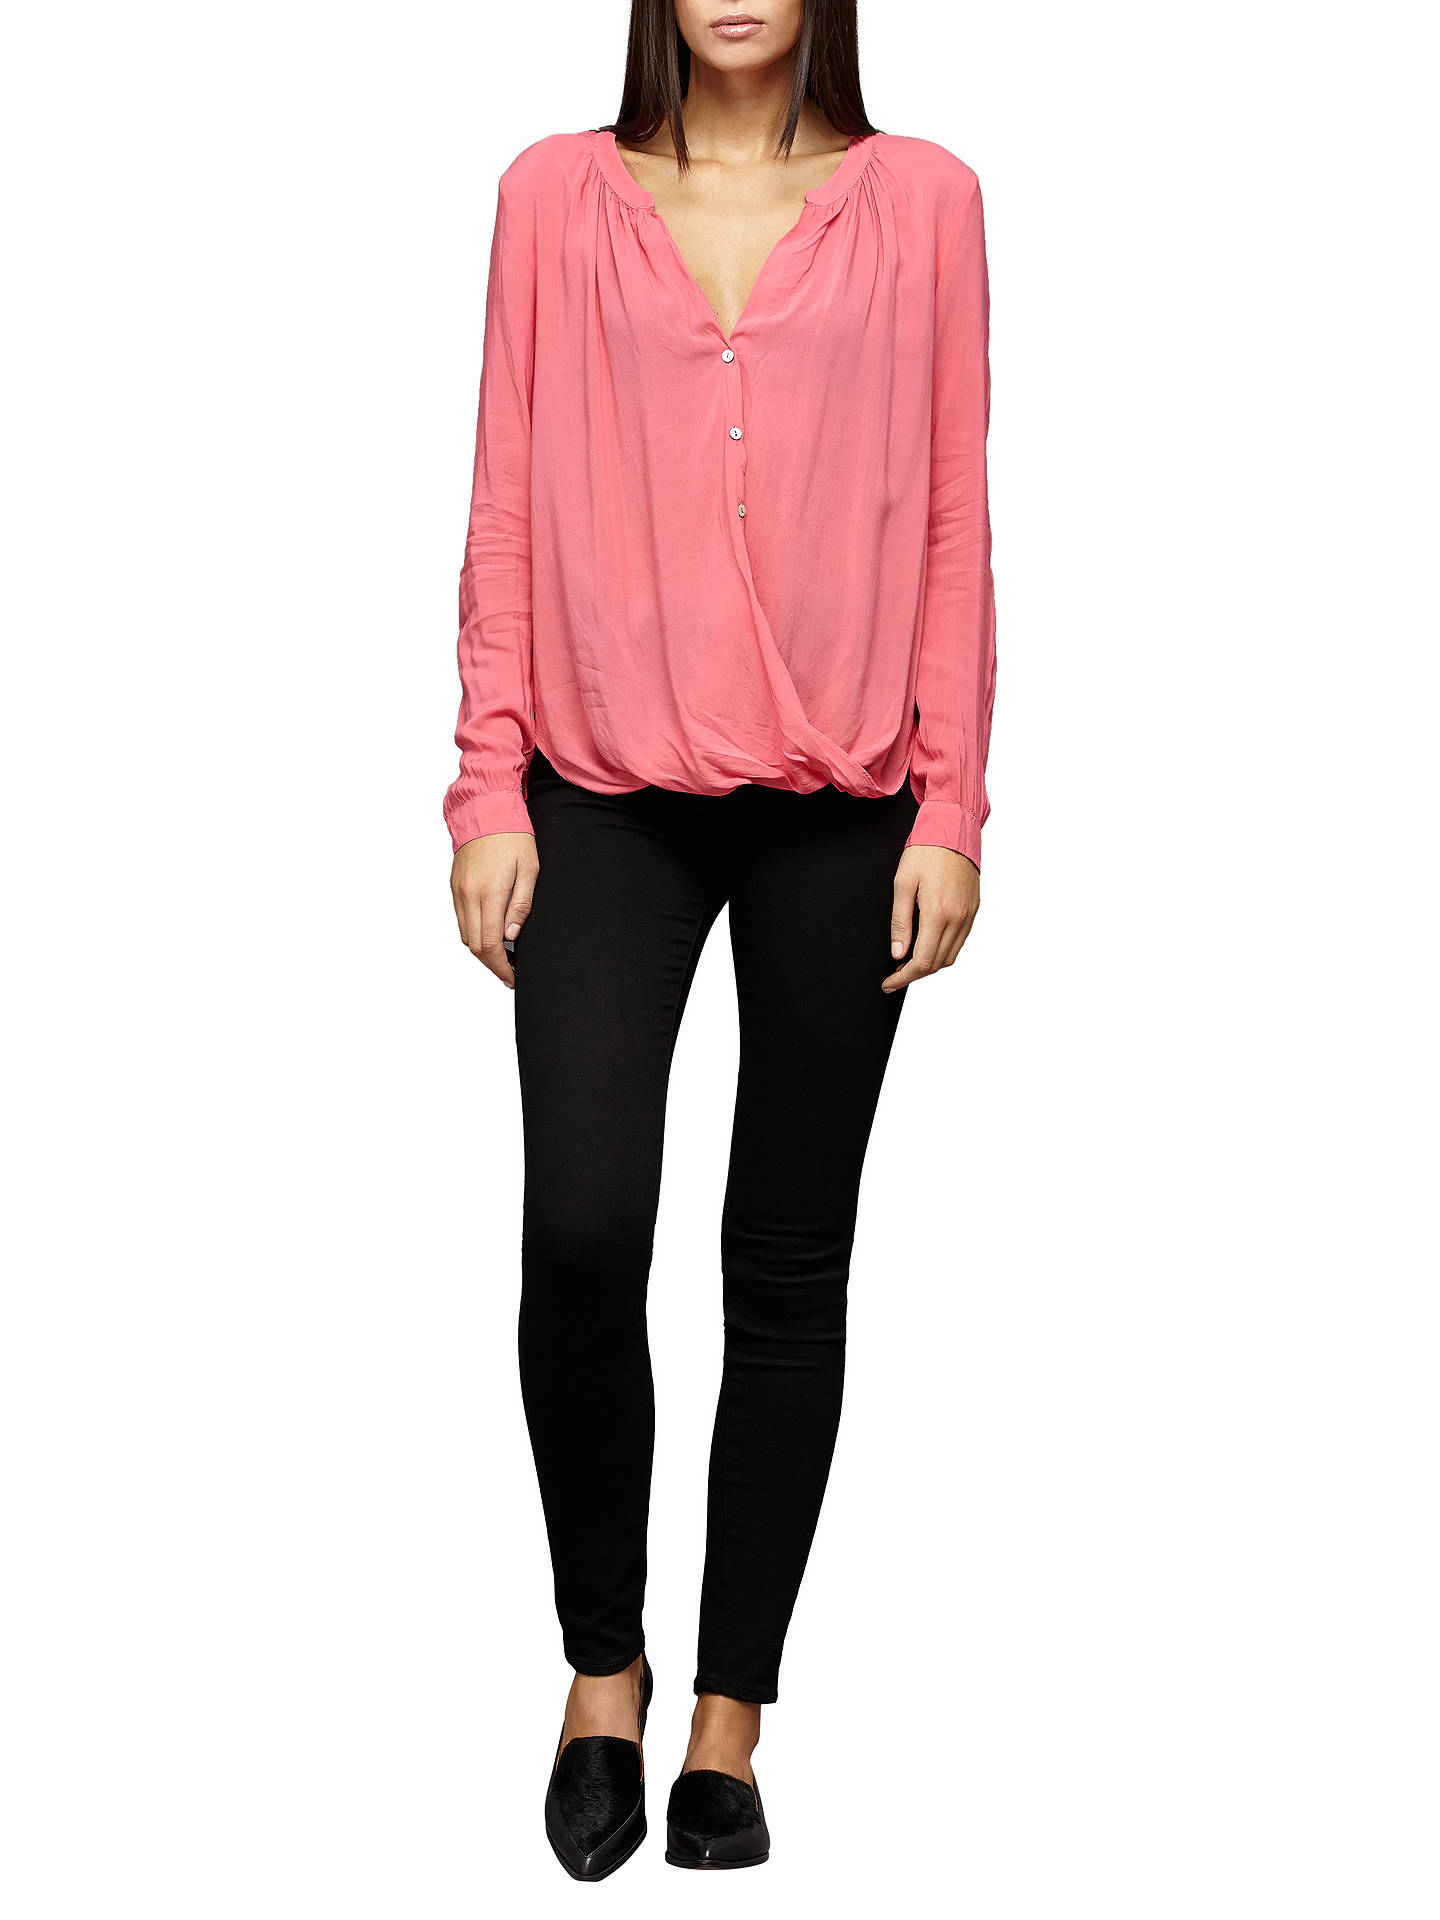 BuyPaige Margot High Rise Ultra Skinny Jeans, Black Shadow, 25 Online at johnlewis.com